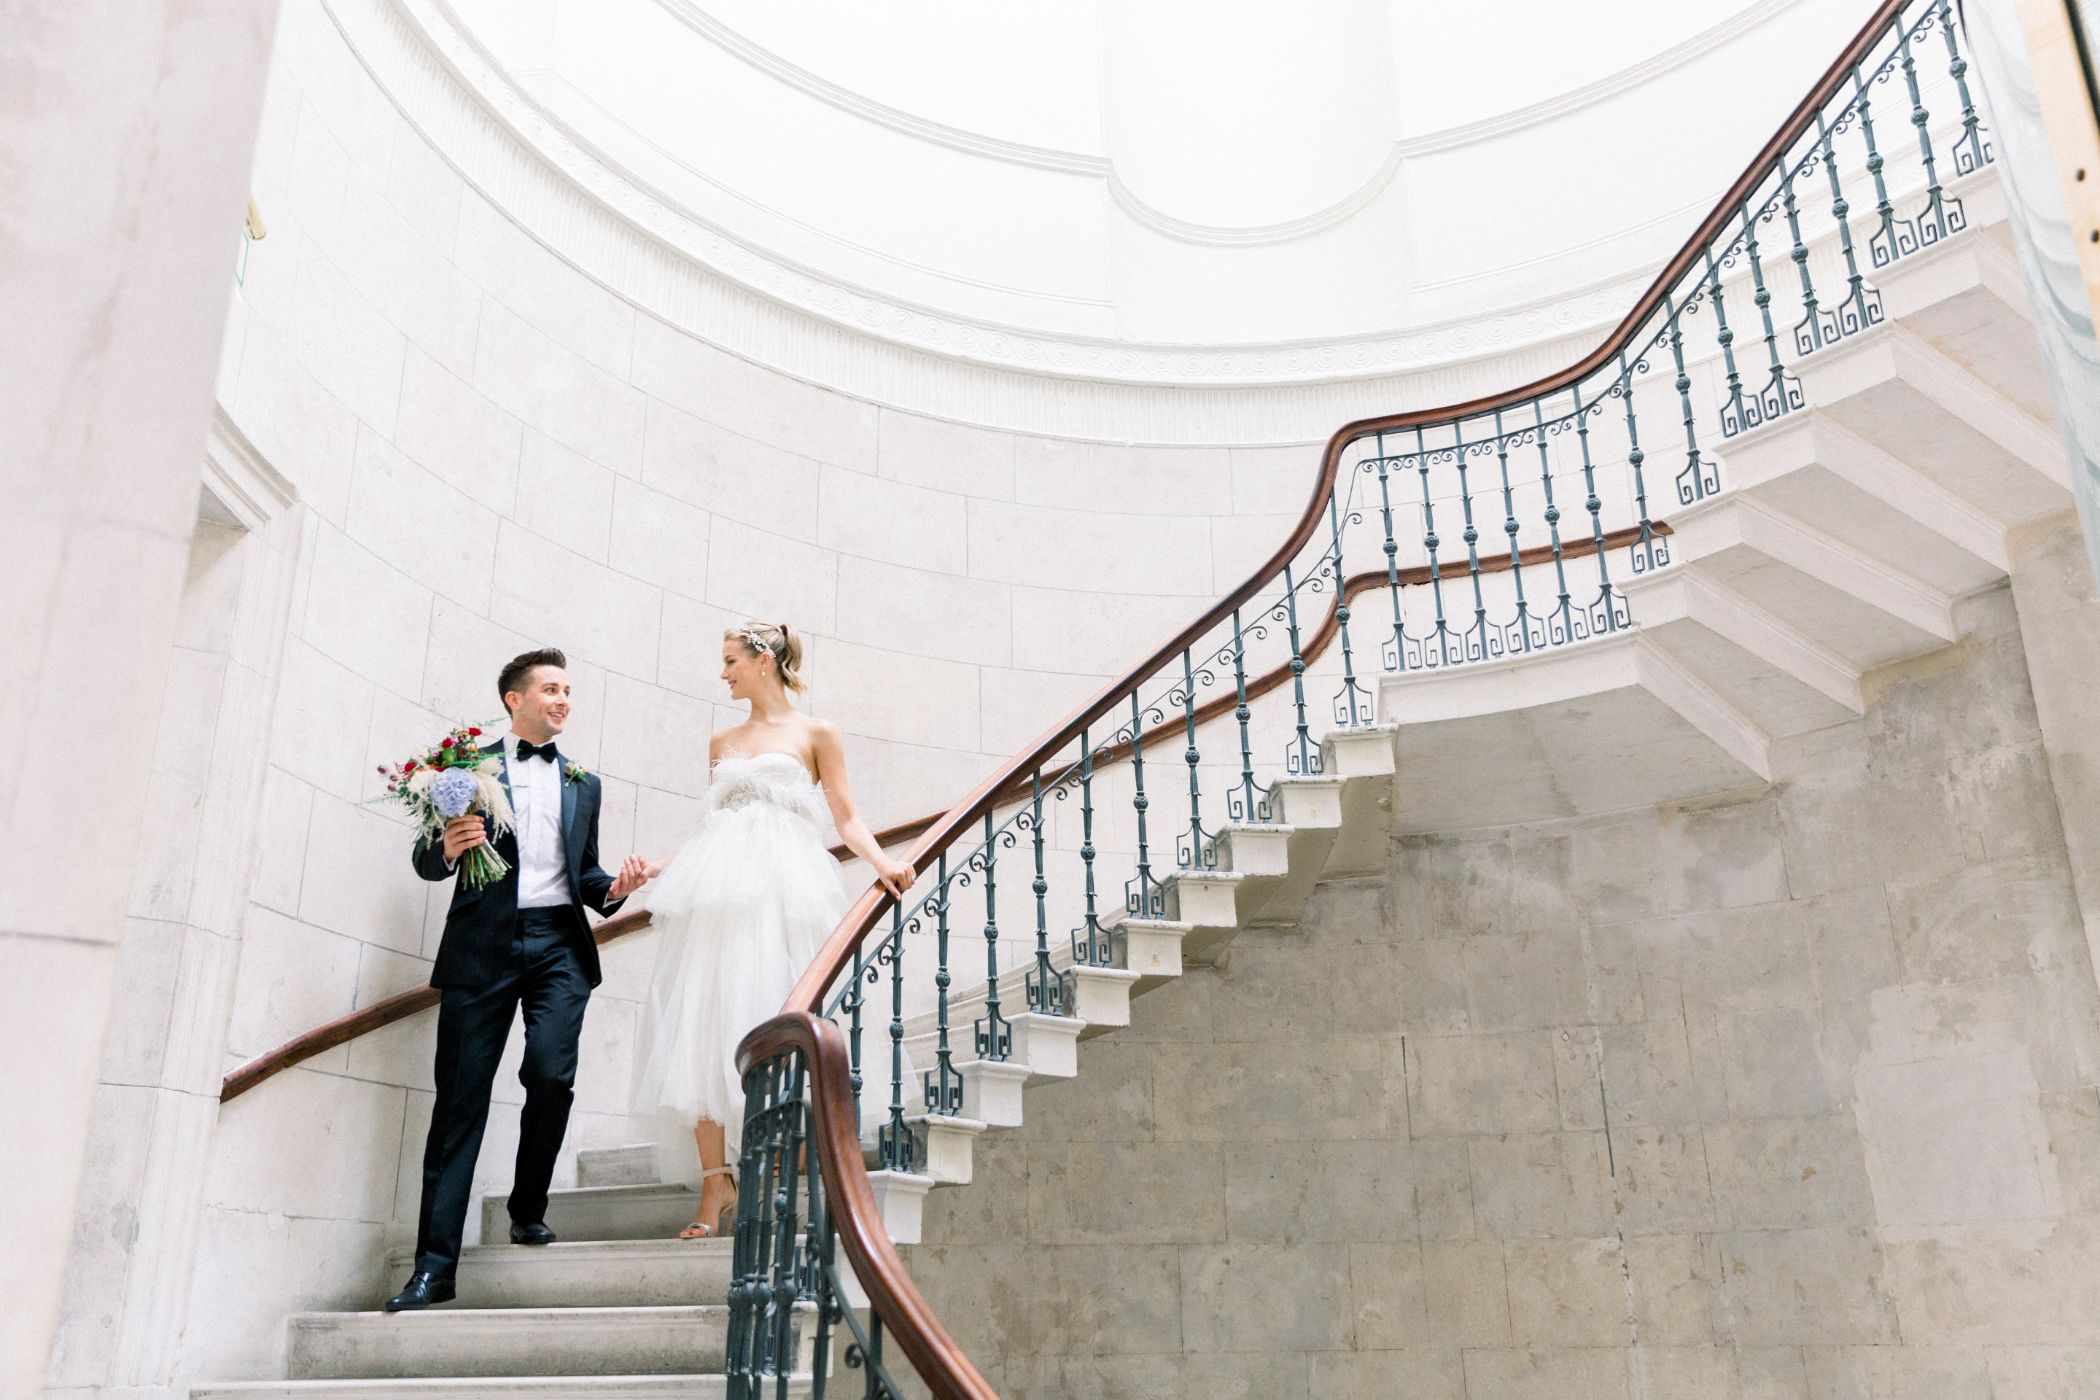 Bride and groom posing on stairwell in city hall.